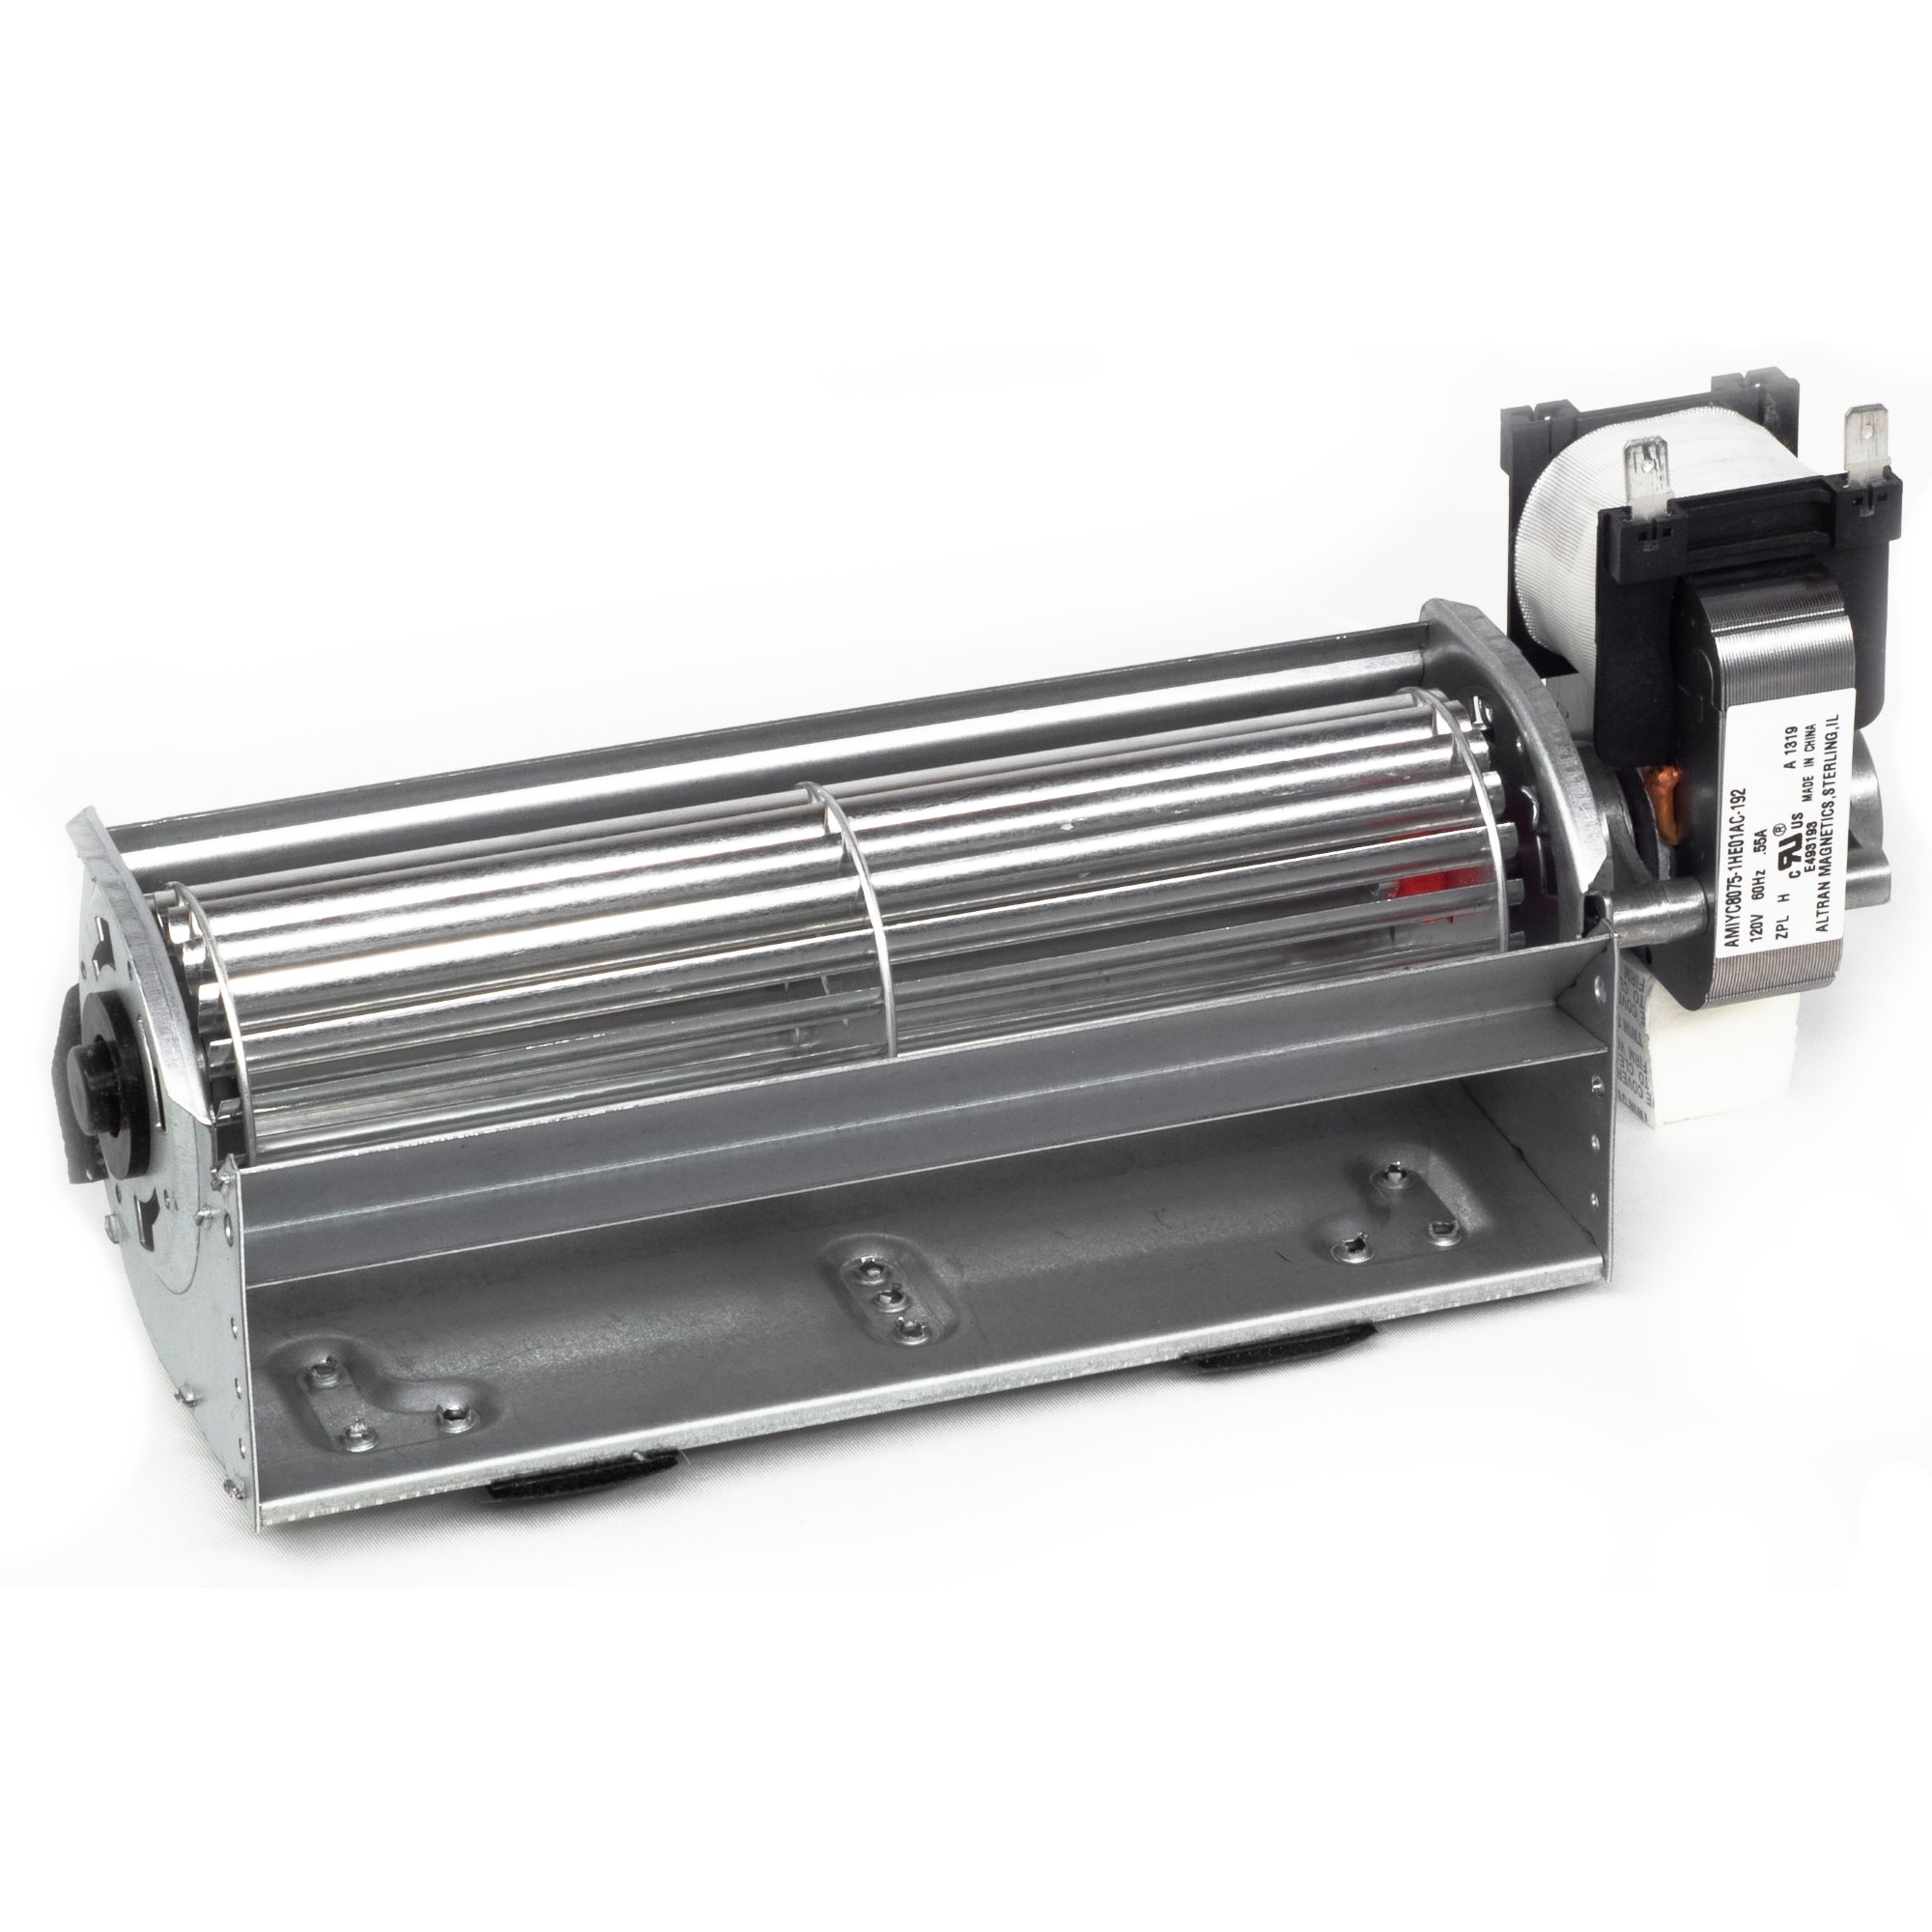 LP-4500 Universal Low Profile Replacement Fireplace Blower